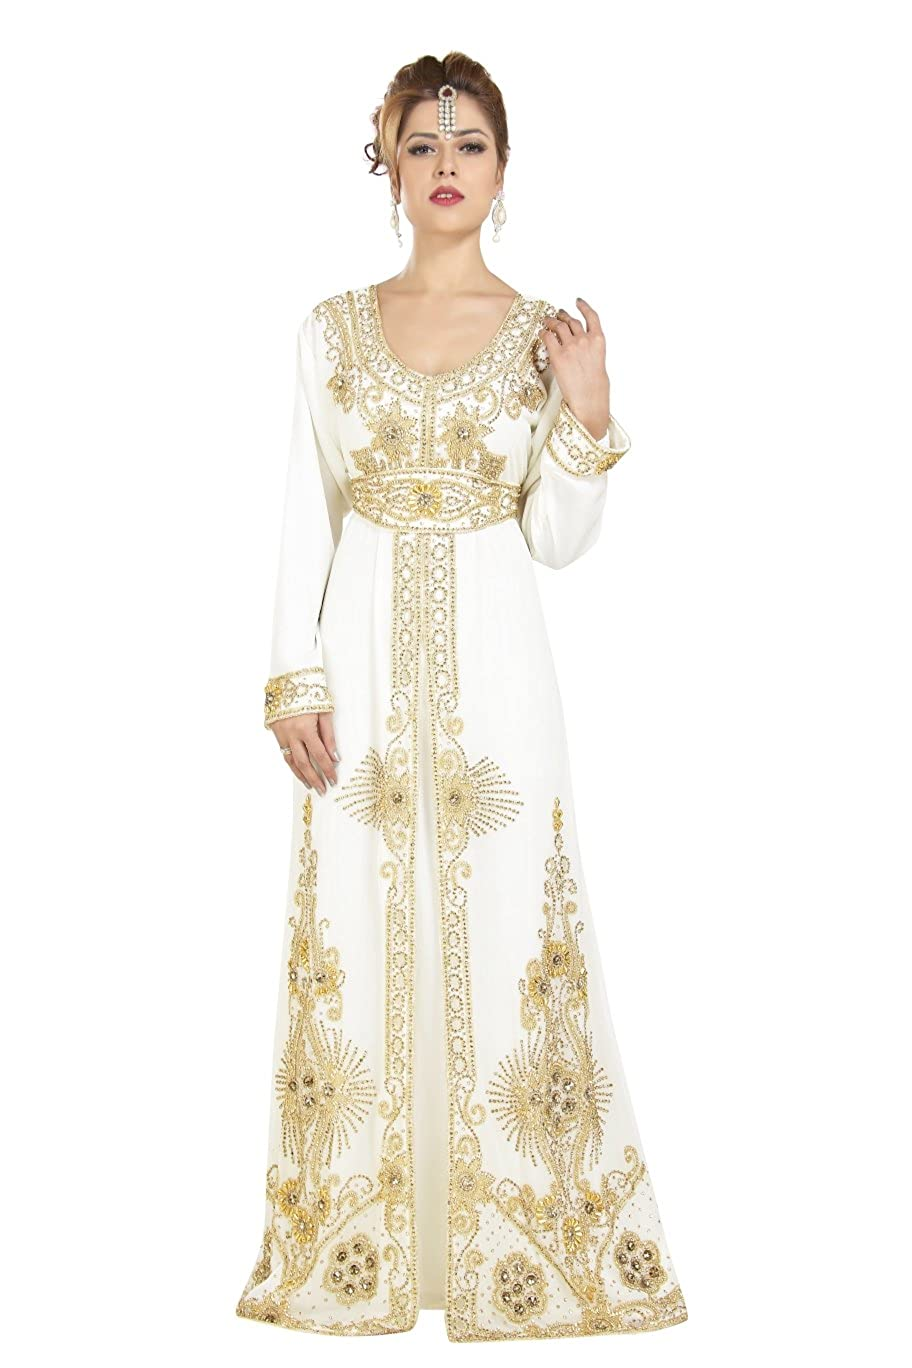 a5390b26f71 Amazon.com  Moroccan Party Wear Maghribi Kaftan Perfect for Any Festive  Occasion 6568  Clothing